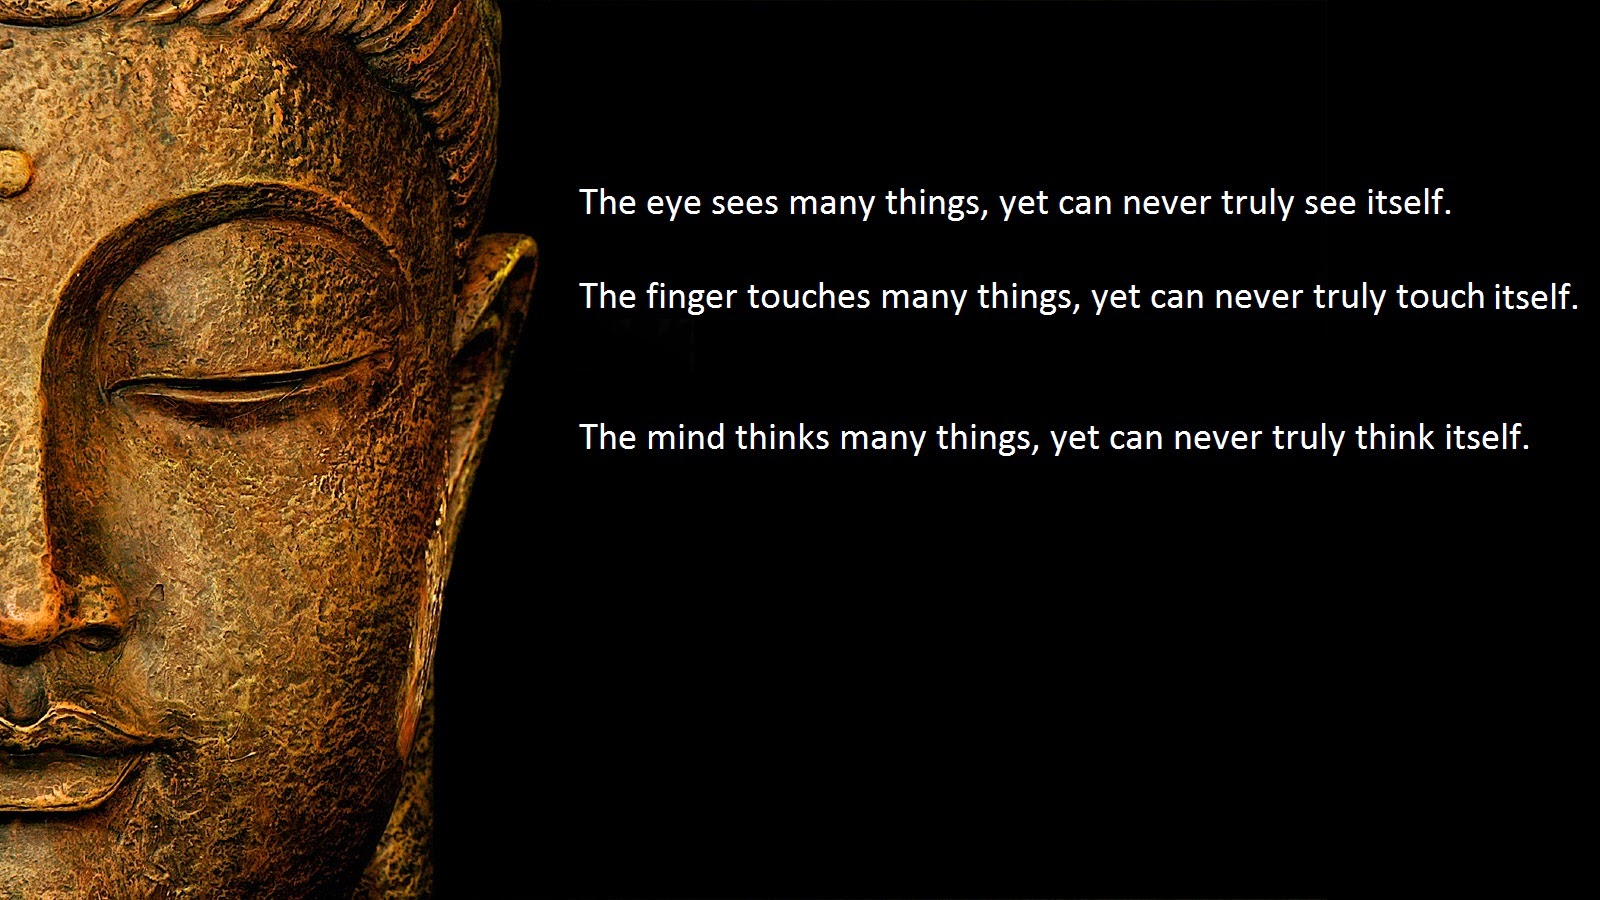 HD Buddha Quotes Wallpapers For Facebook Cover